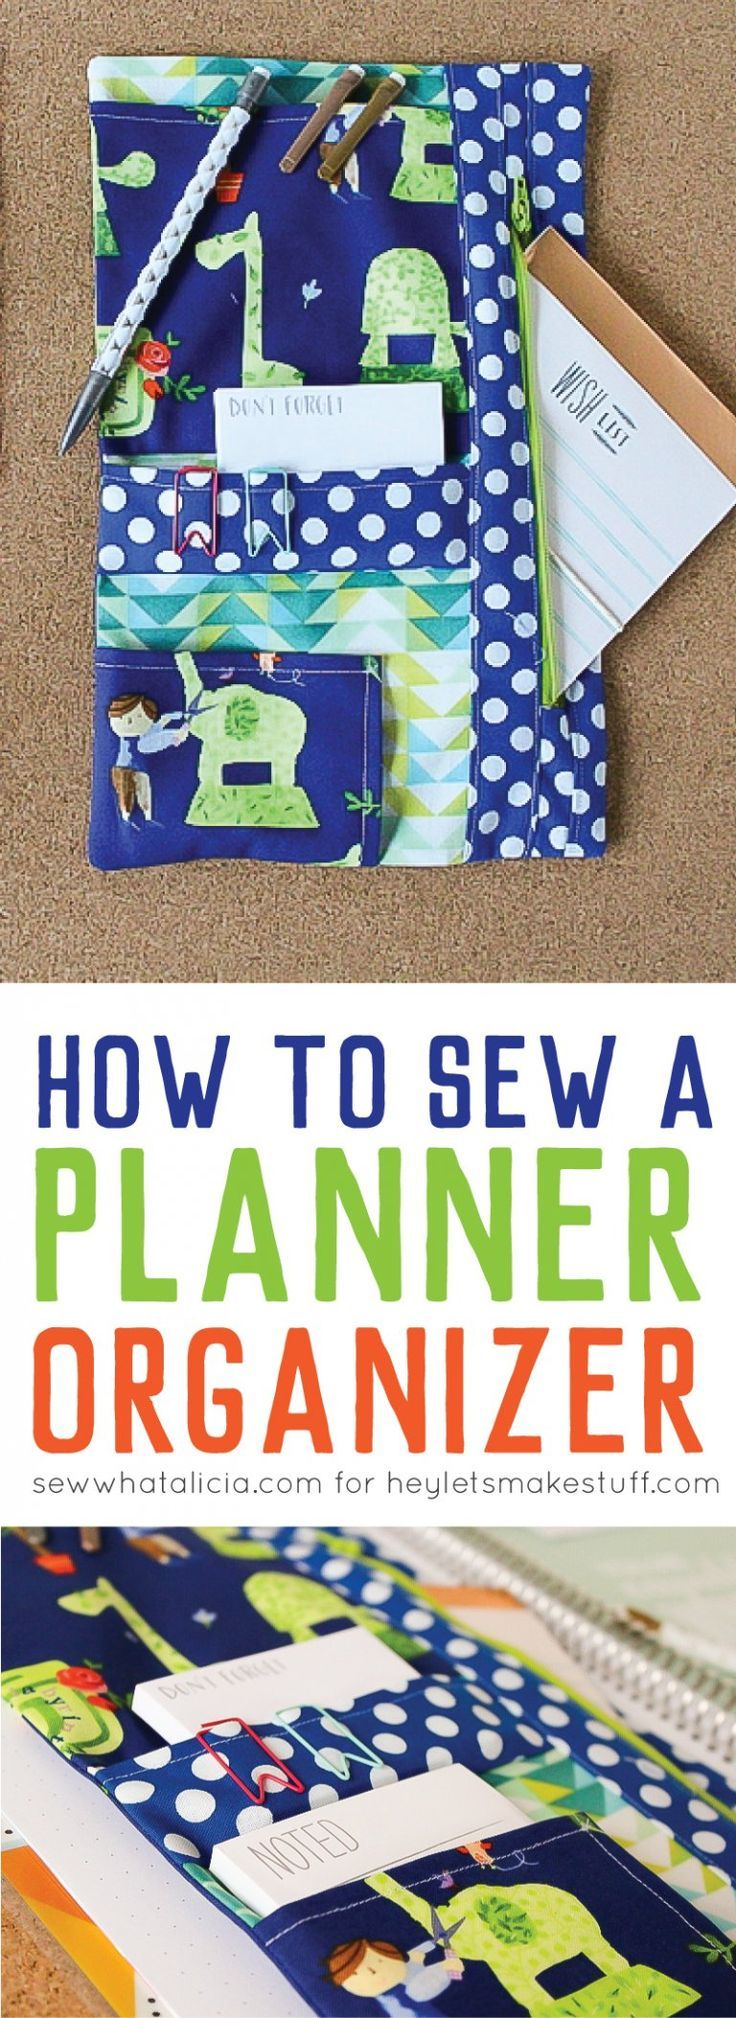 How to Sew a Planner Organizer | Things to Sew | Sewing ...